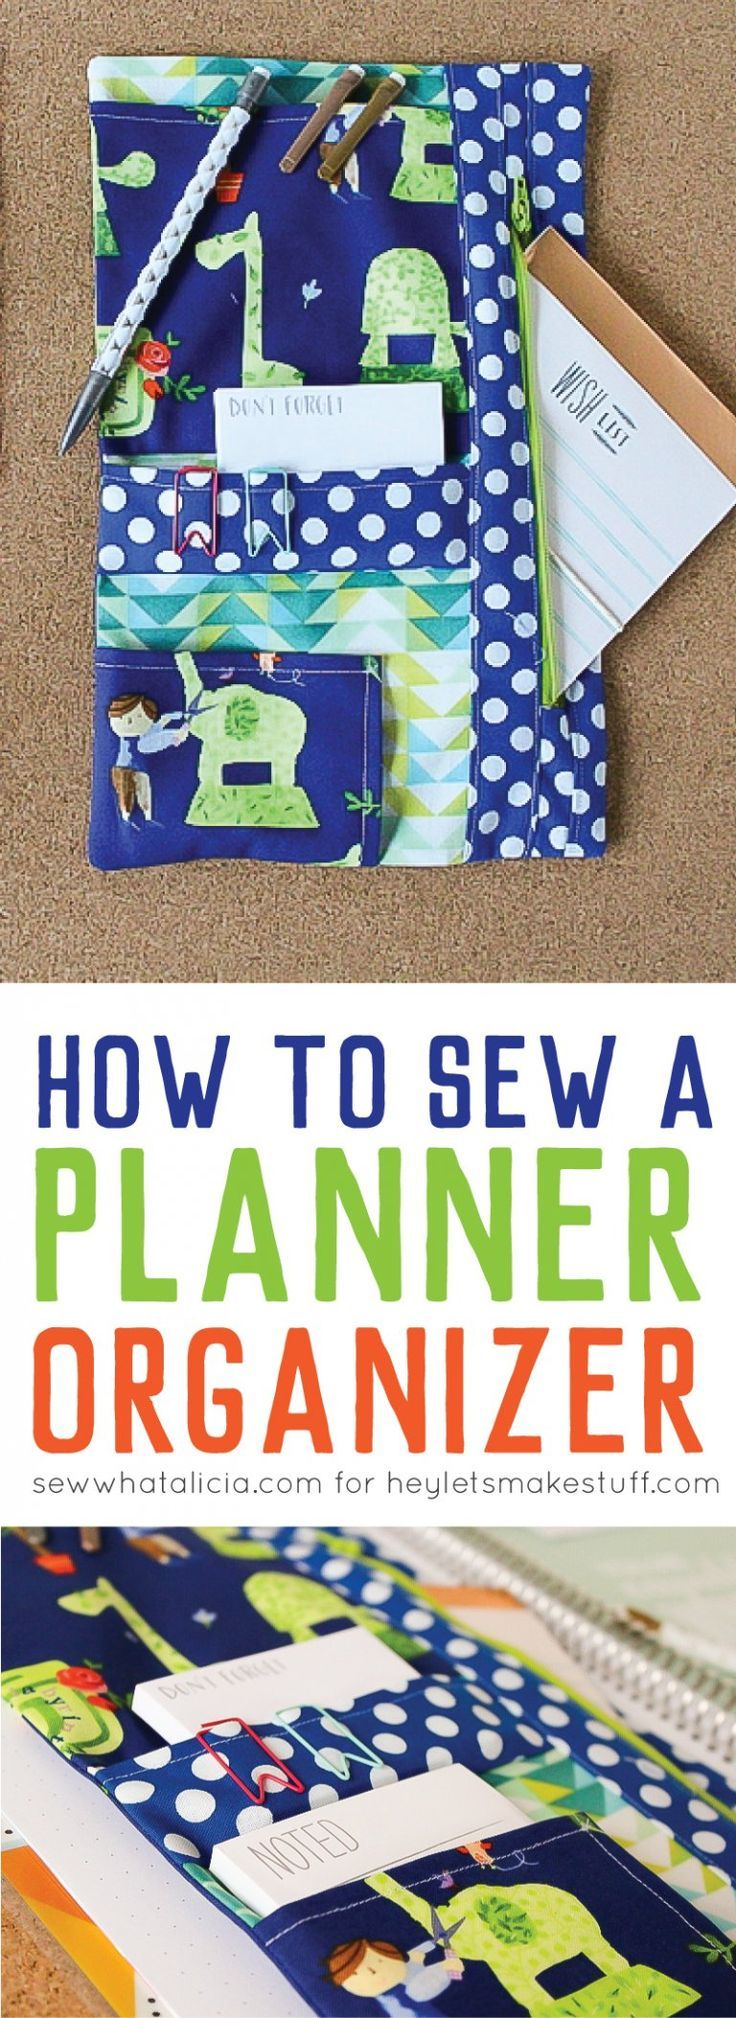 How to Sew a Planner Organizer | Things to Sew | Sewing ...